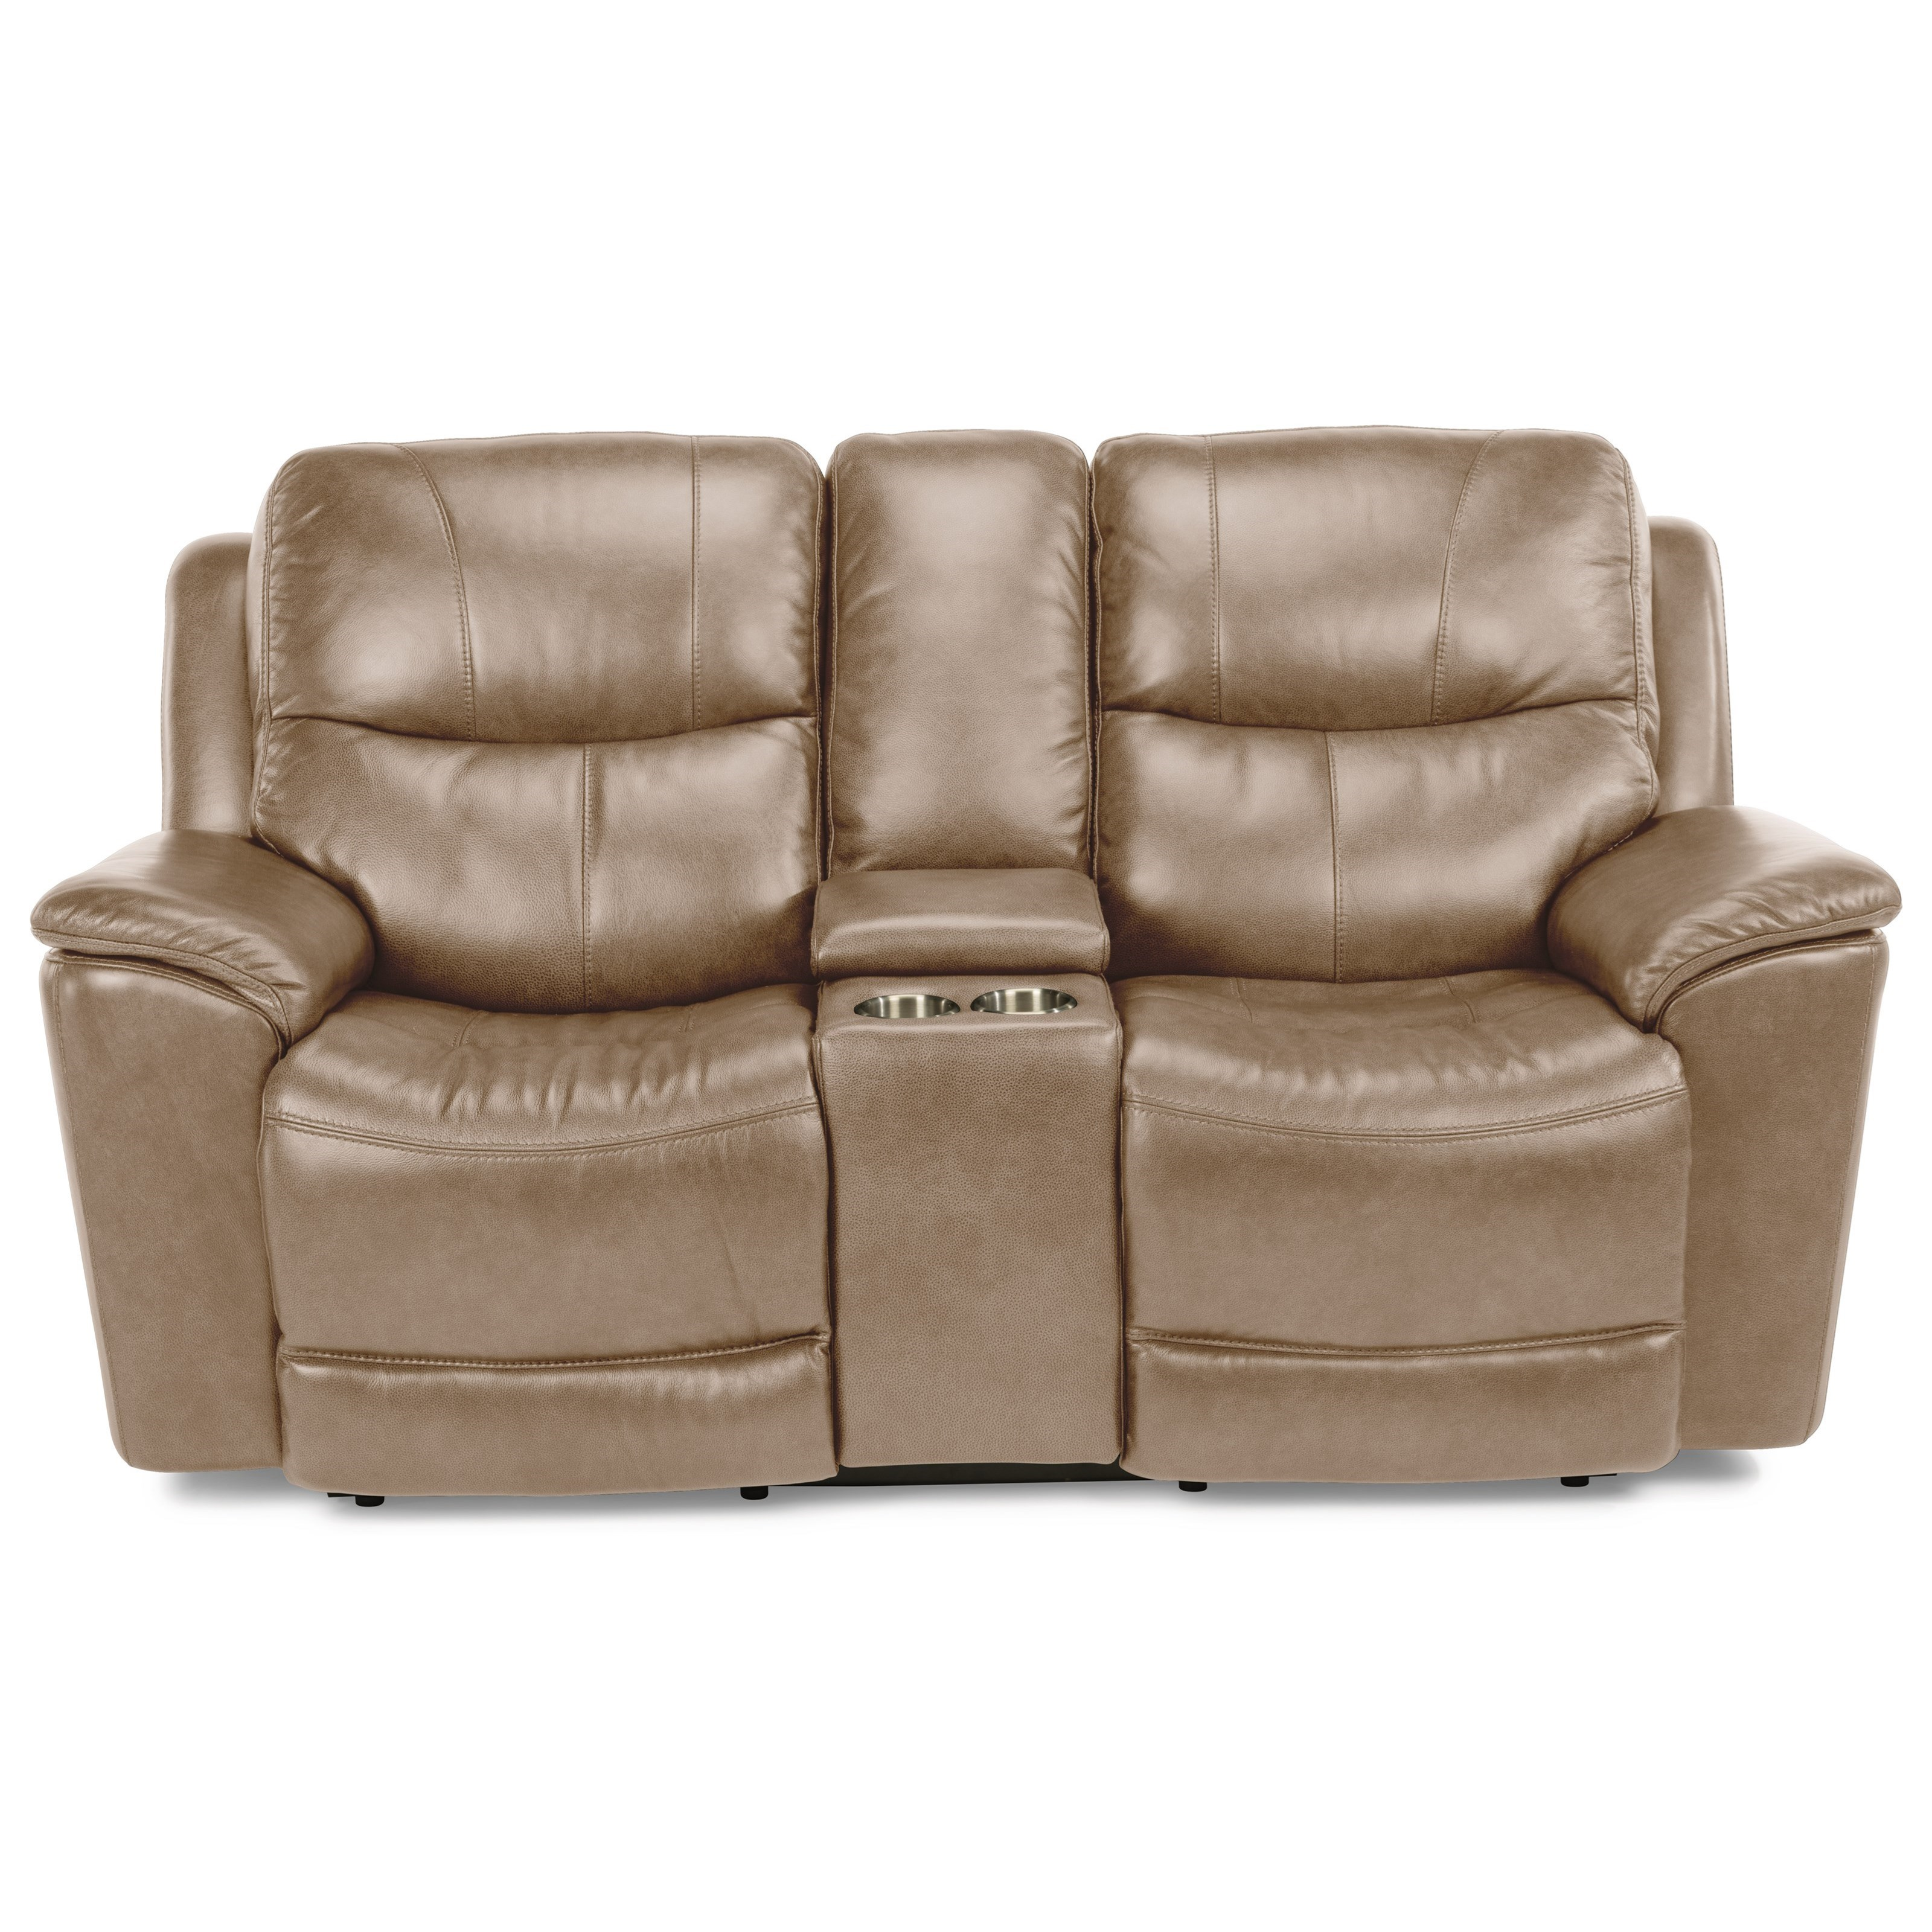 Latitudes - Cade Power Console Love Seat by Flexsteel at Johnny Janosik